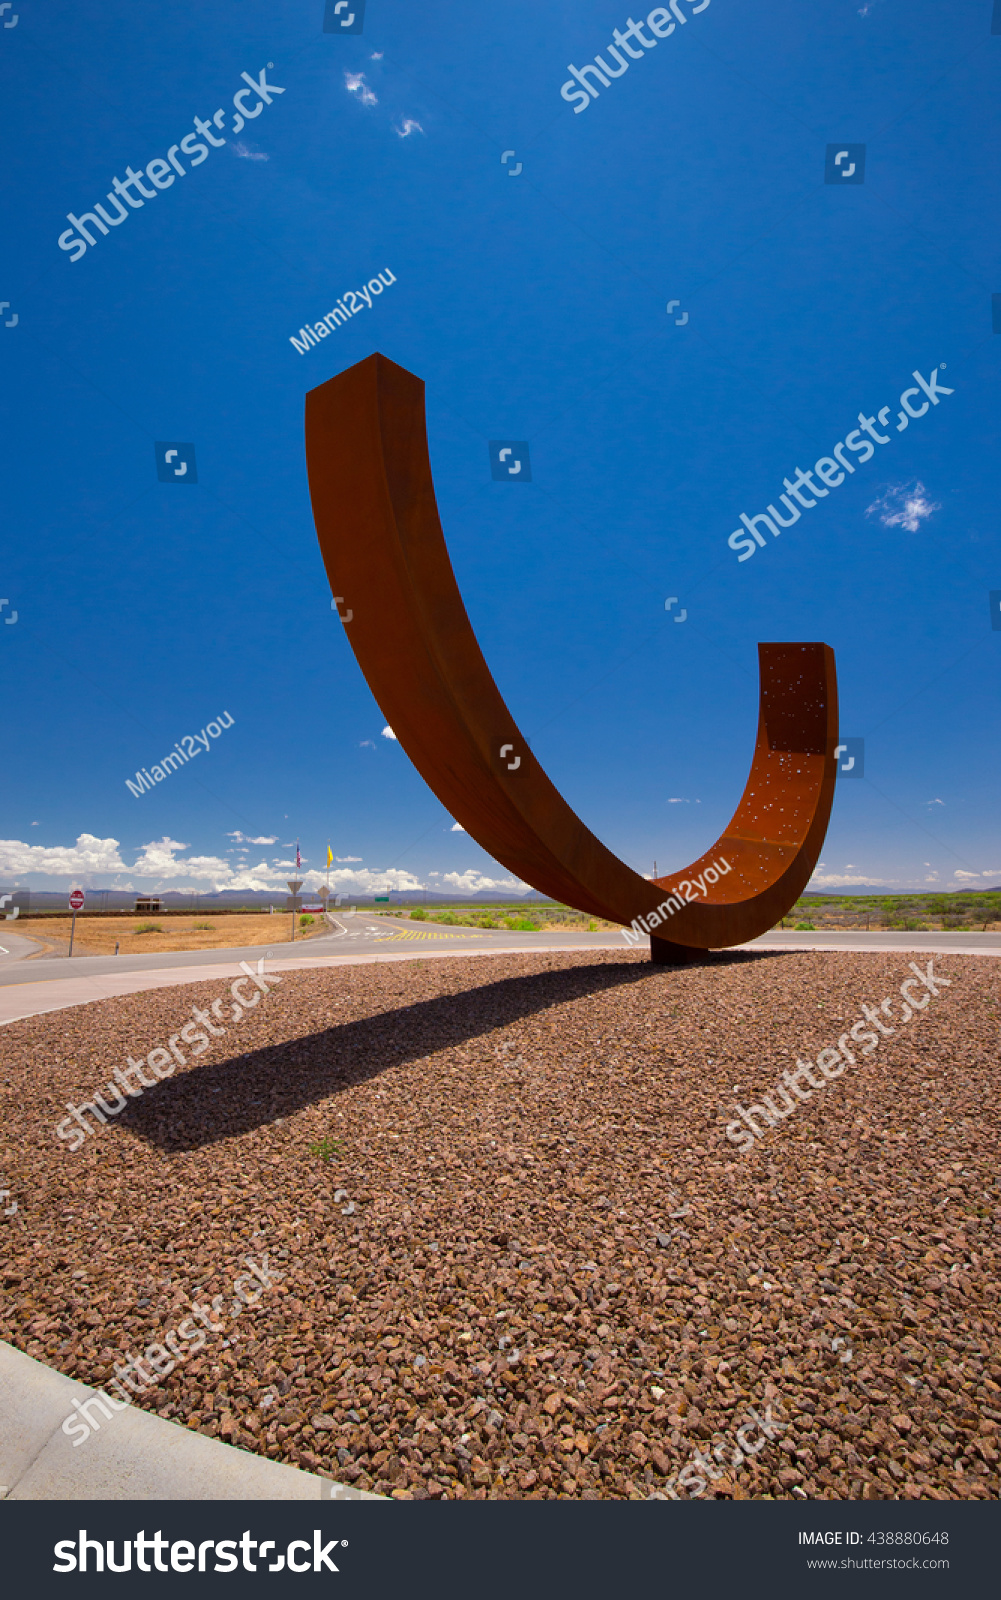 Usanew mexico 20 may 2016 spaceport stock photo 438880648 usanew mexico 20 may 2016 spaceport stock photo 438880648 shutterstock buycottarizona